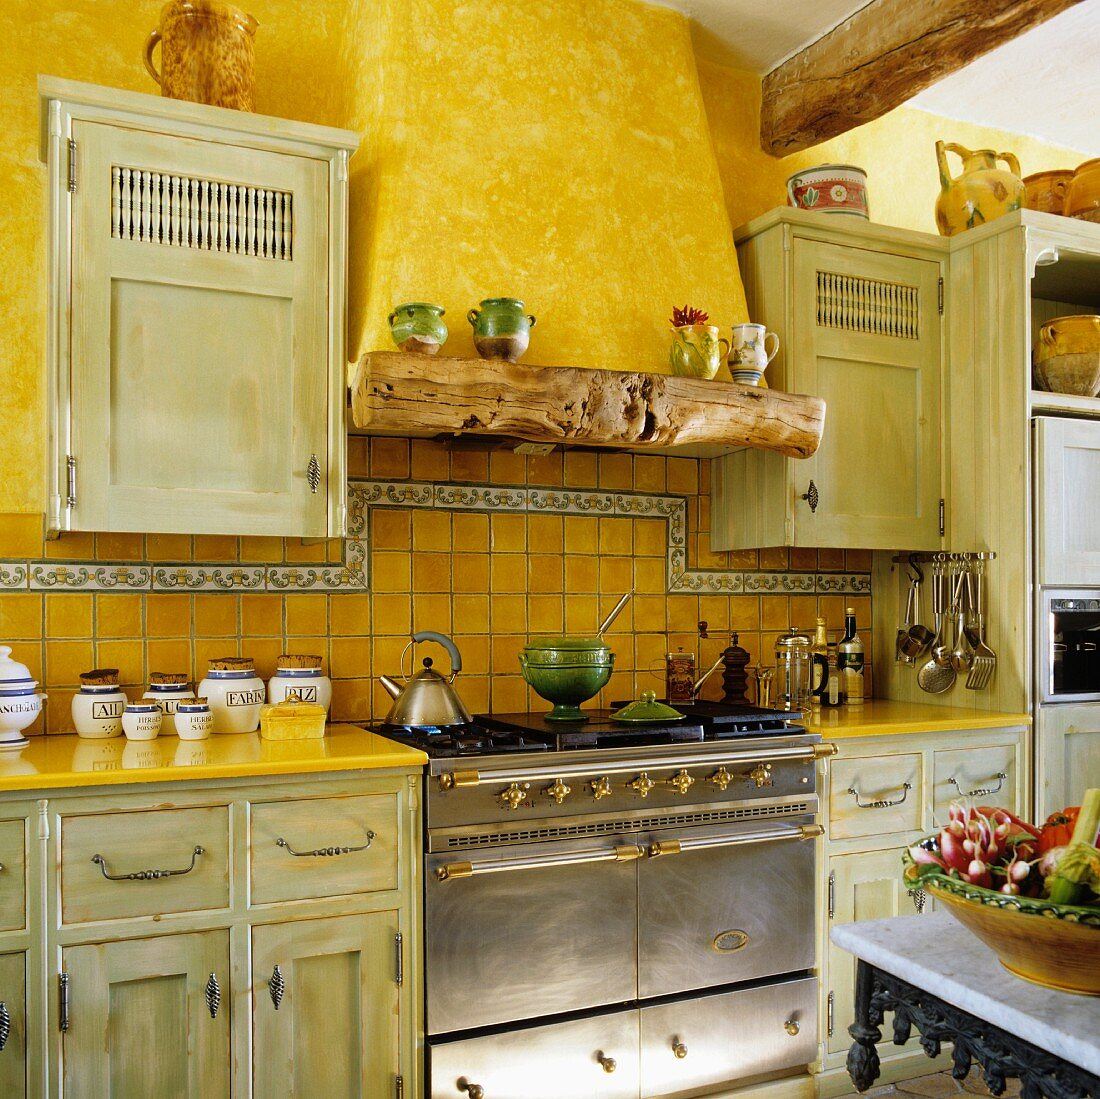 An old kitchen in a country house with canary yellow walls and an antique stainless steel cooker with a built-in extractor fan